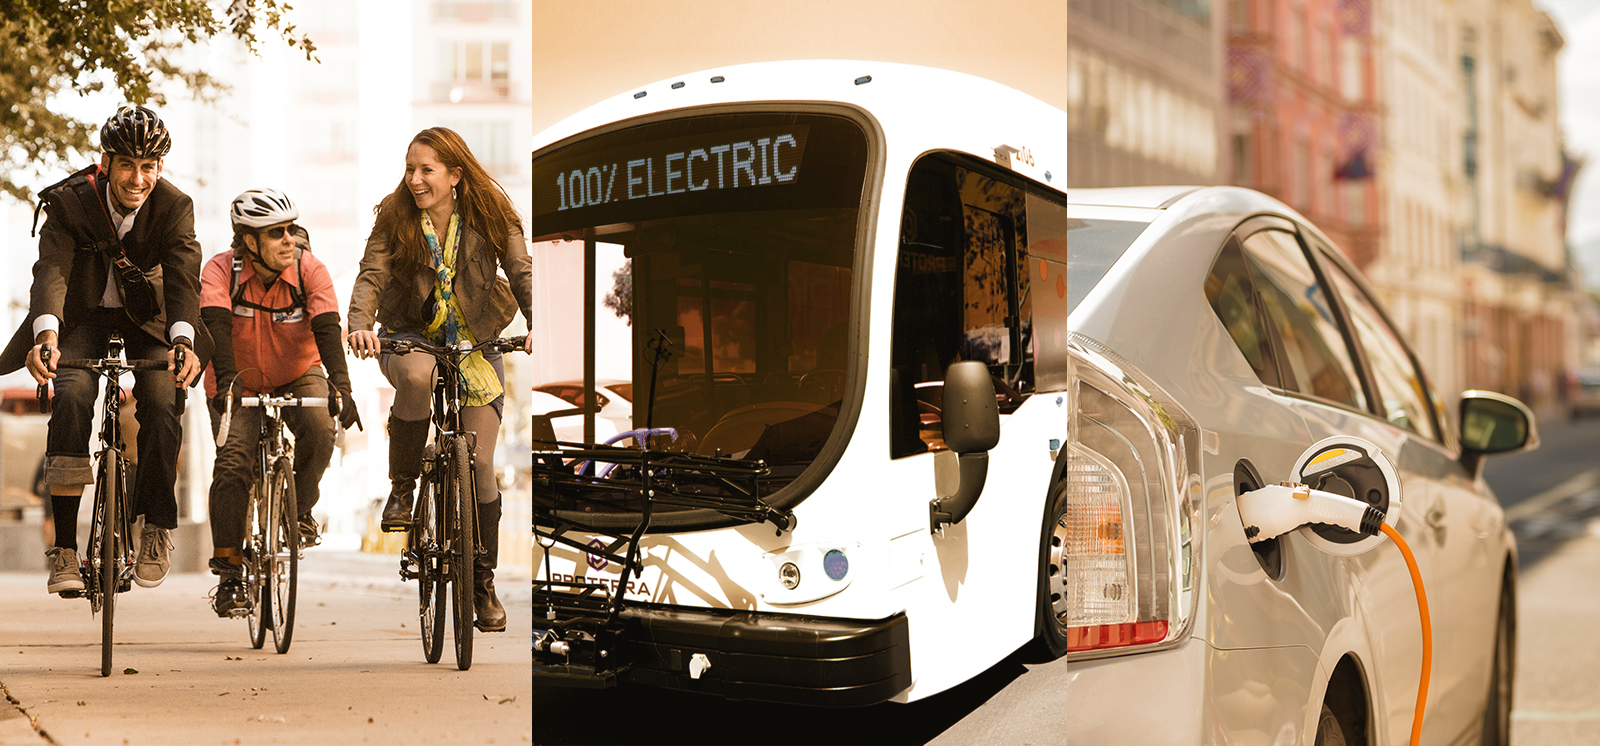 """<h4>TRANSFORM TRANSPORTATION</h4><p>Getting from """"A to B"""" could be much healthier, safer and more pleasant — and better for our planet — if it was easier to walk, bike, take transit or use an electric vehicle. We're urging Congress and the Biden administration to build a 21st century transportation system.</p><div><a class=""""slideshowButton"""" href=""""#transAnchor"""">LEARN MORE</a></div><em>Adam Coppola Photography/Public Domain, Erica Hsu, Matej Kastelic via Shutterstock</em>"""